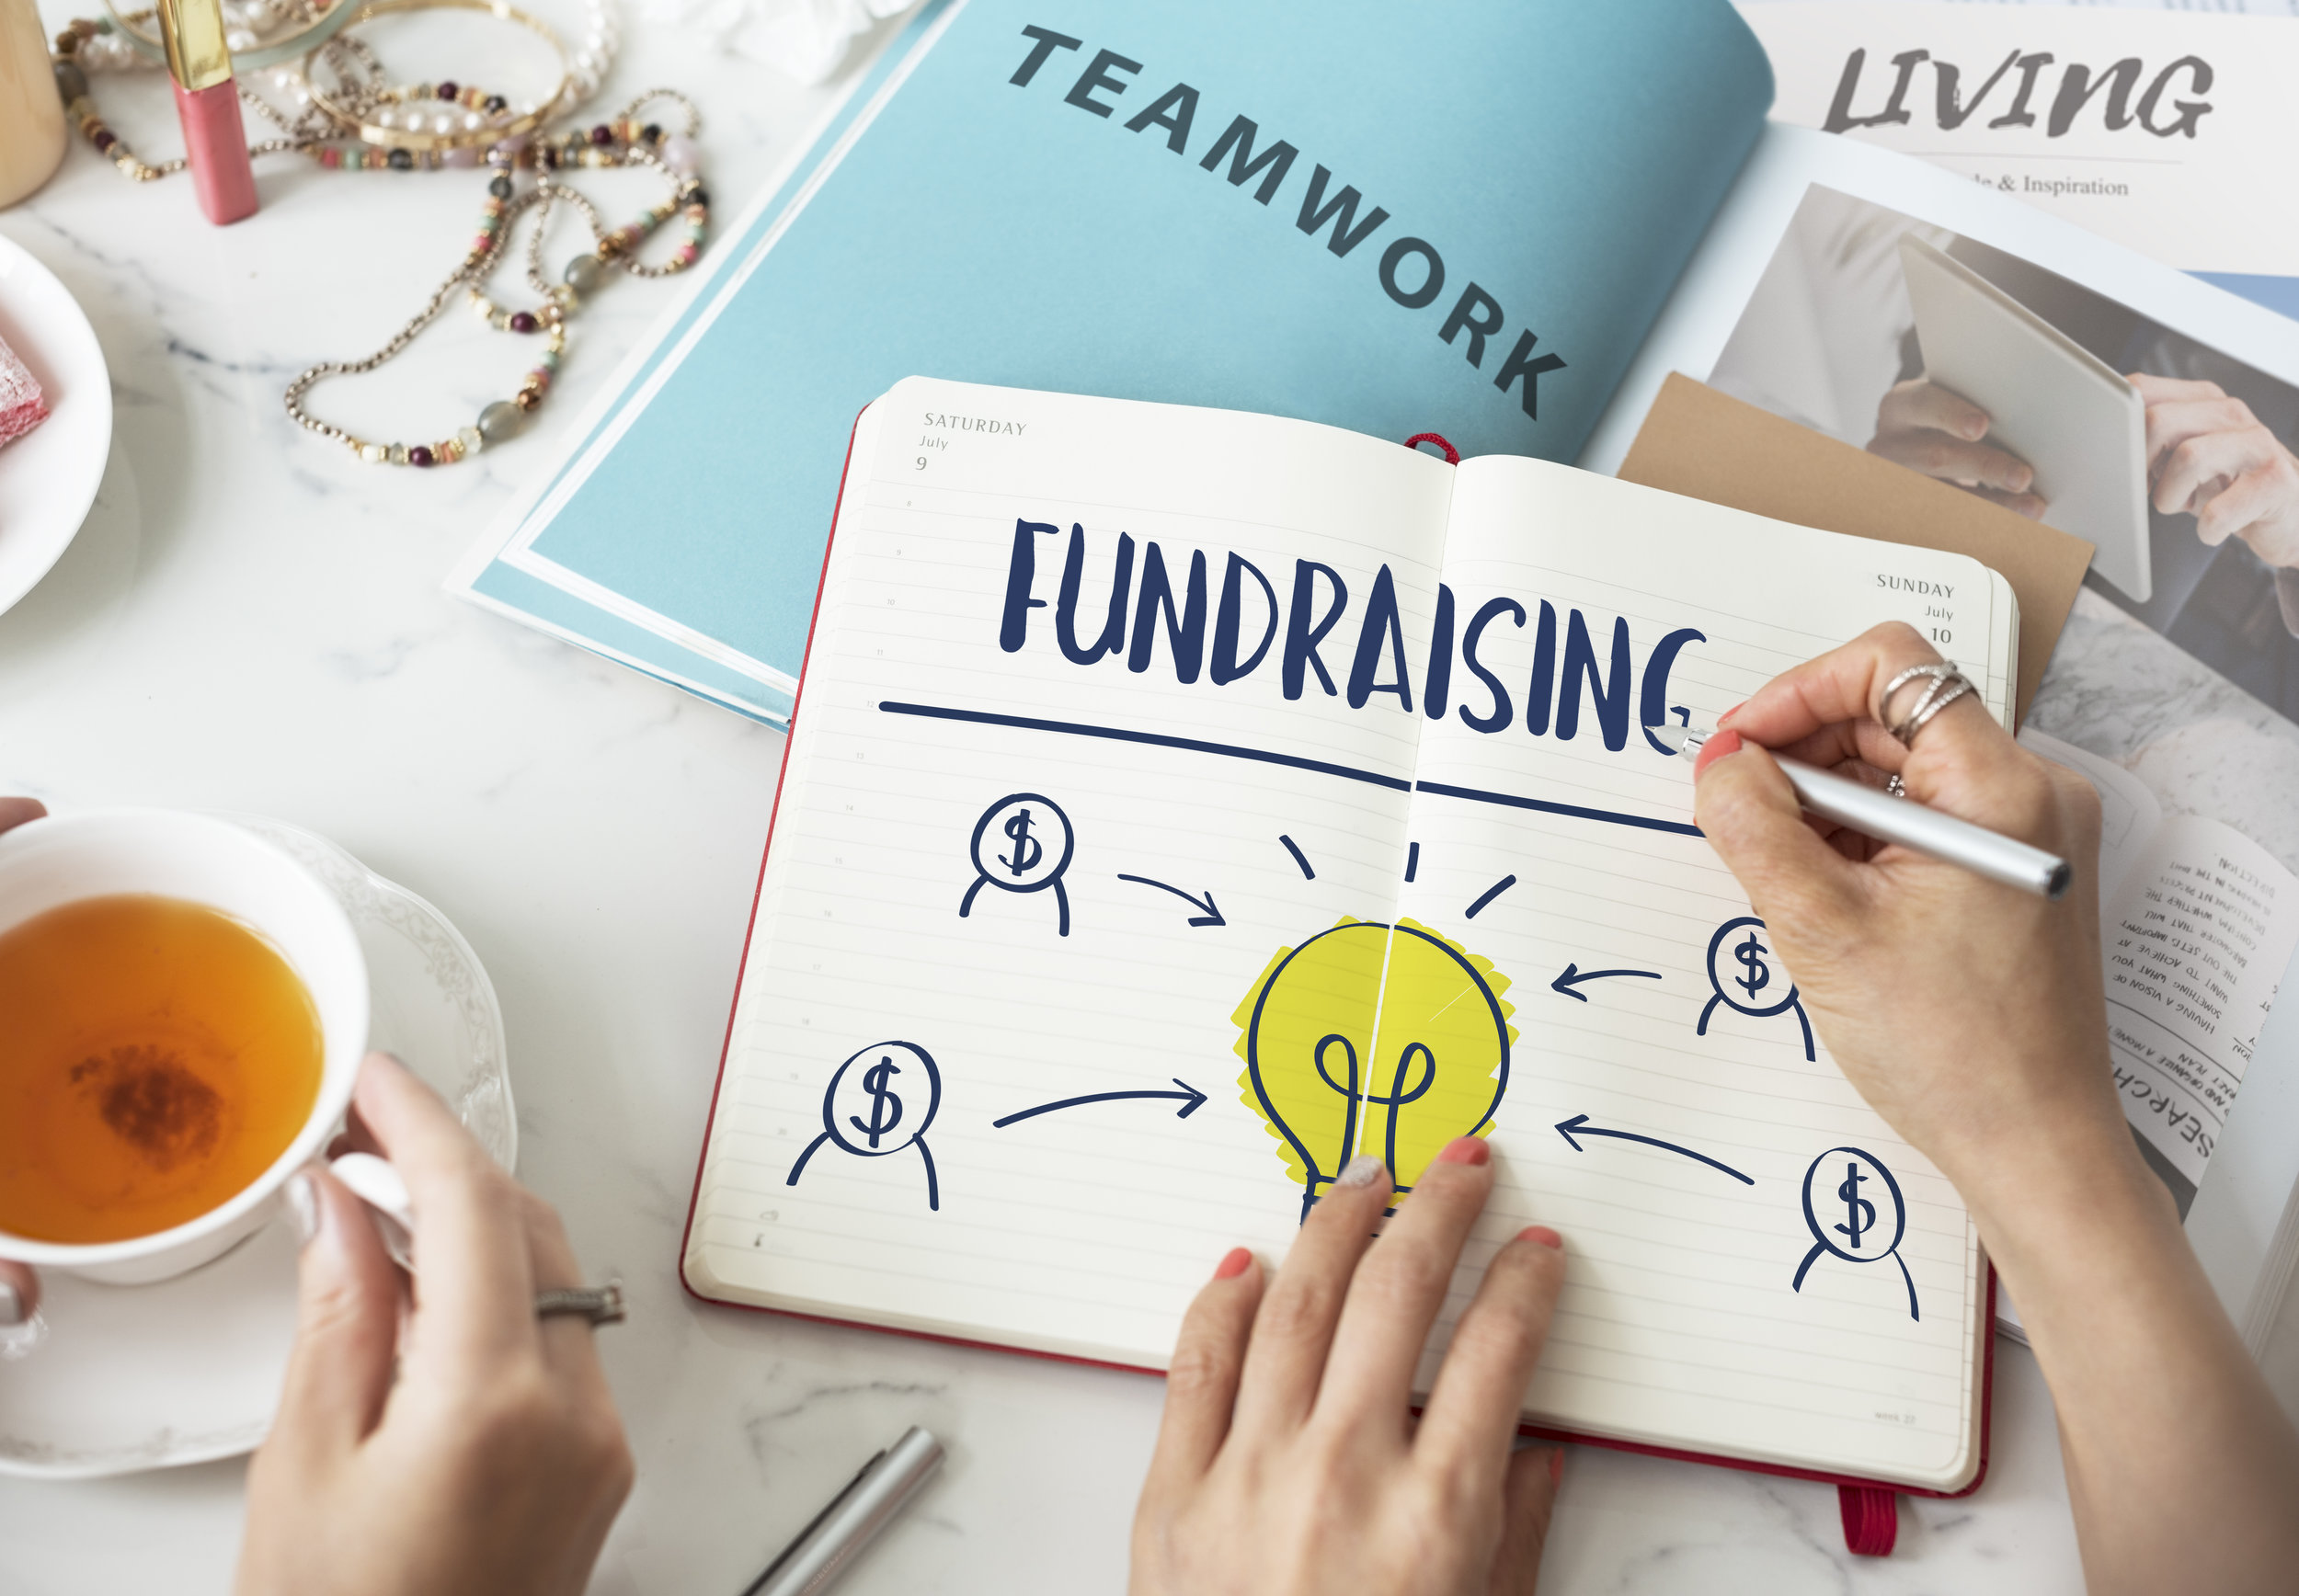 Get Funded! - Looking for funding for your startup or project? Here are 10 highlights from the P&P Get Funded Conference 2018.